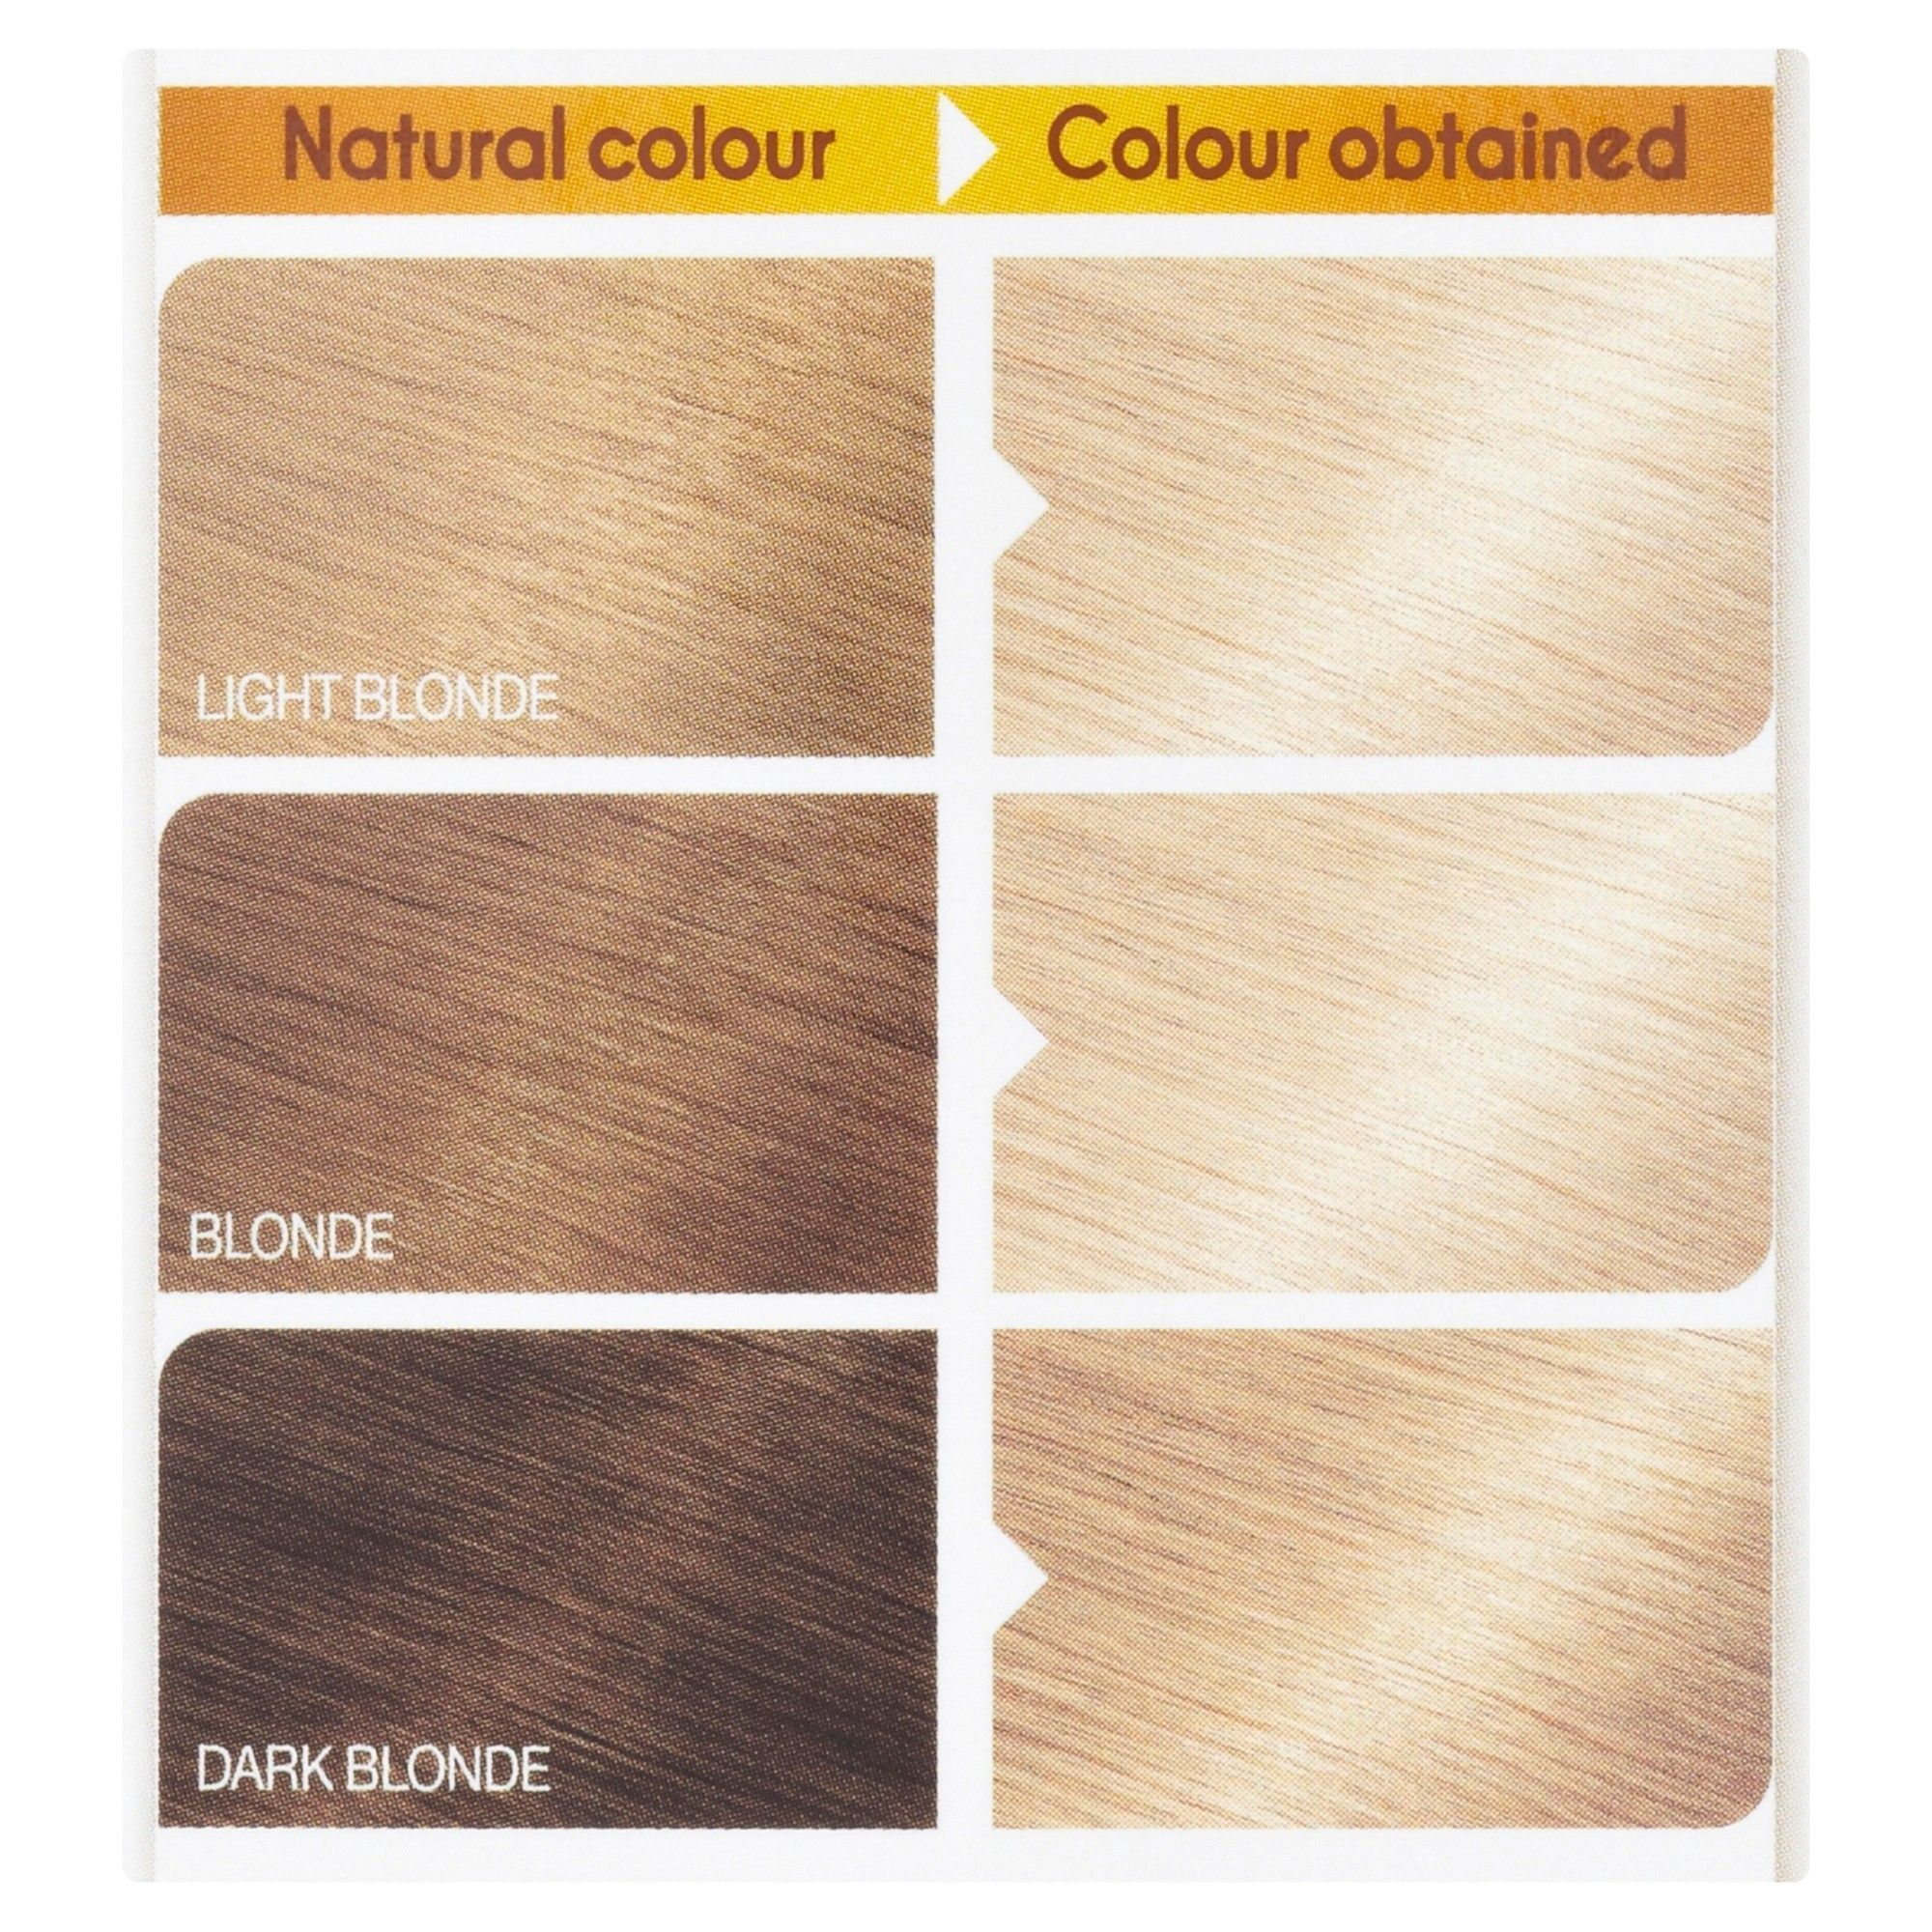 Garnier Belle Colour 111 Natural Extra Light Ash Blonde Hair Dye